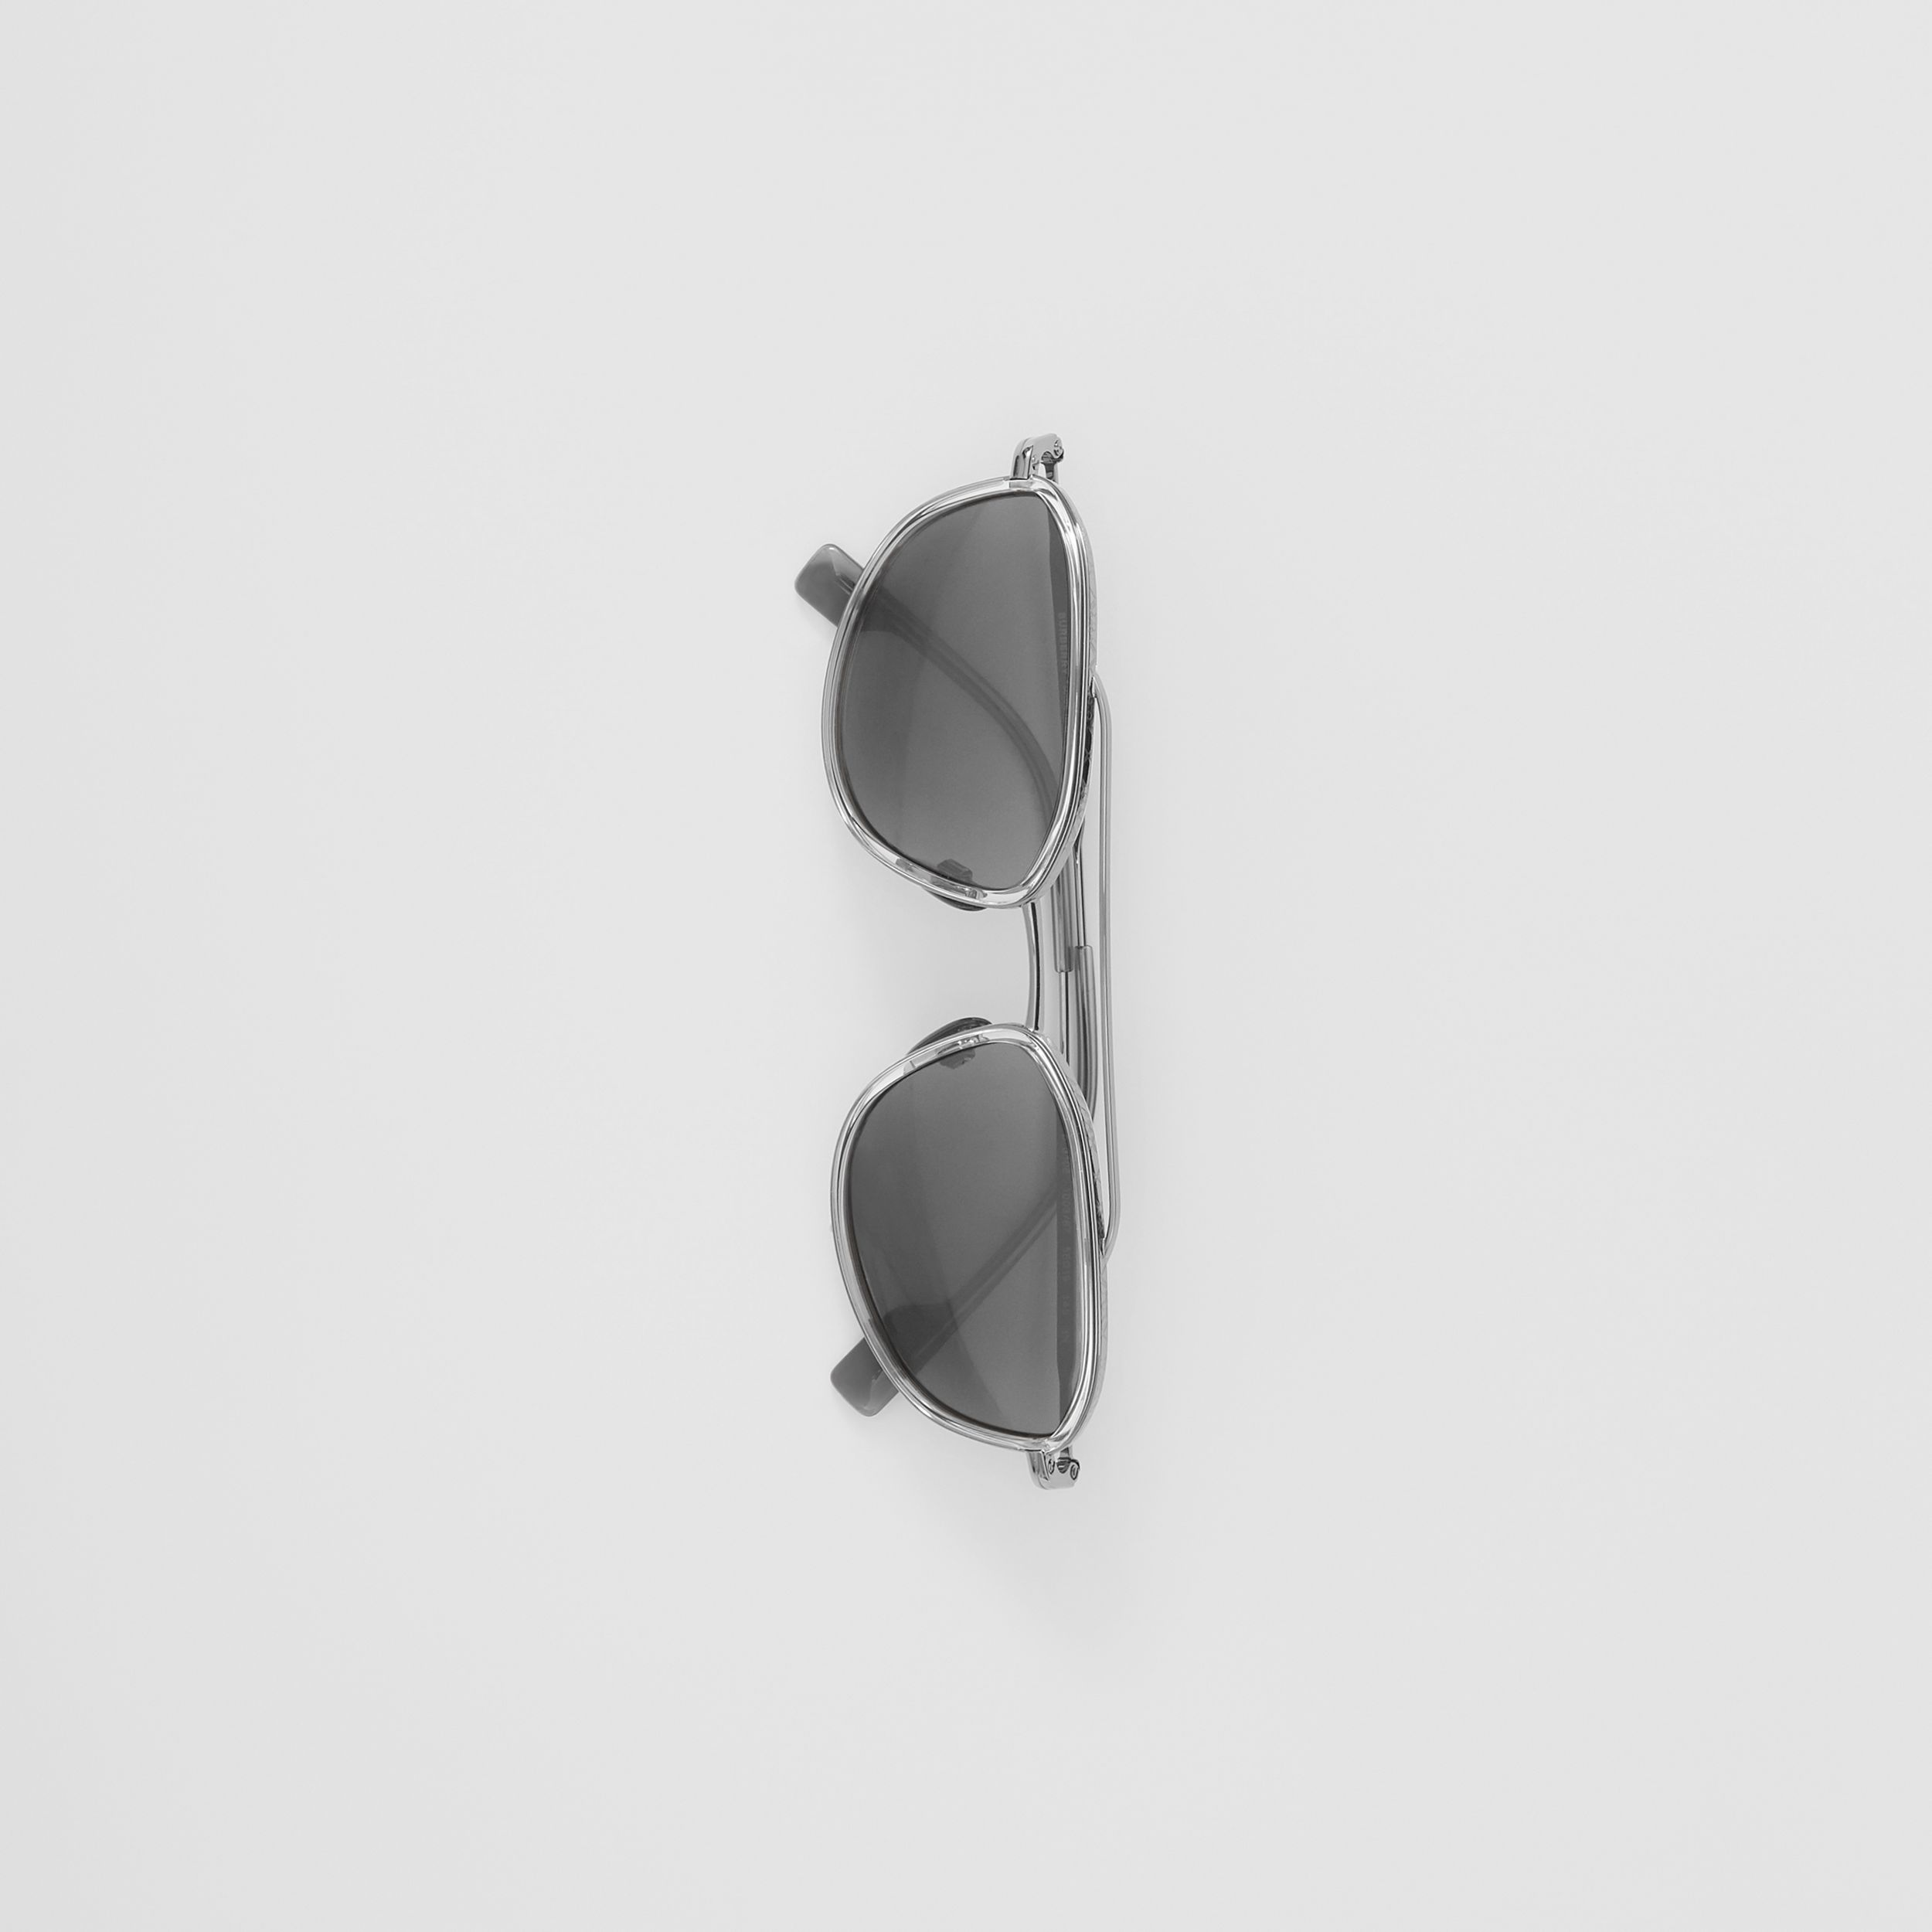 Geometric Navigator Sunglasses in Gunmetal Grey - Men | Burberry - 4